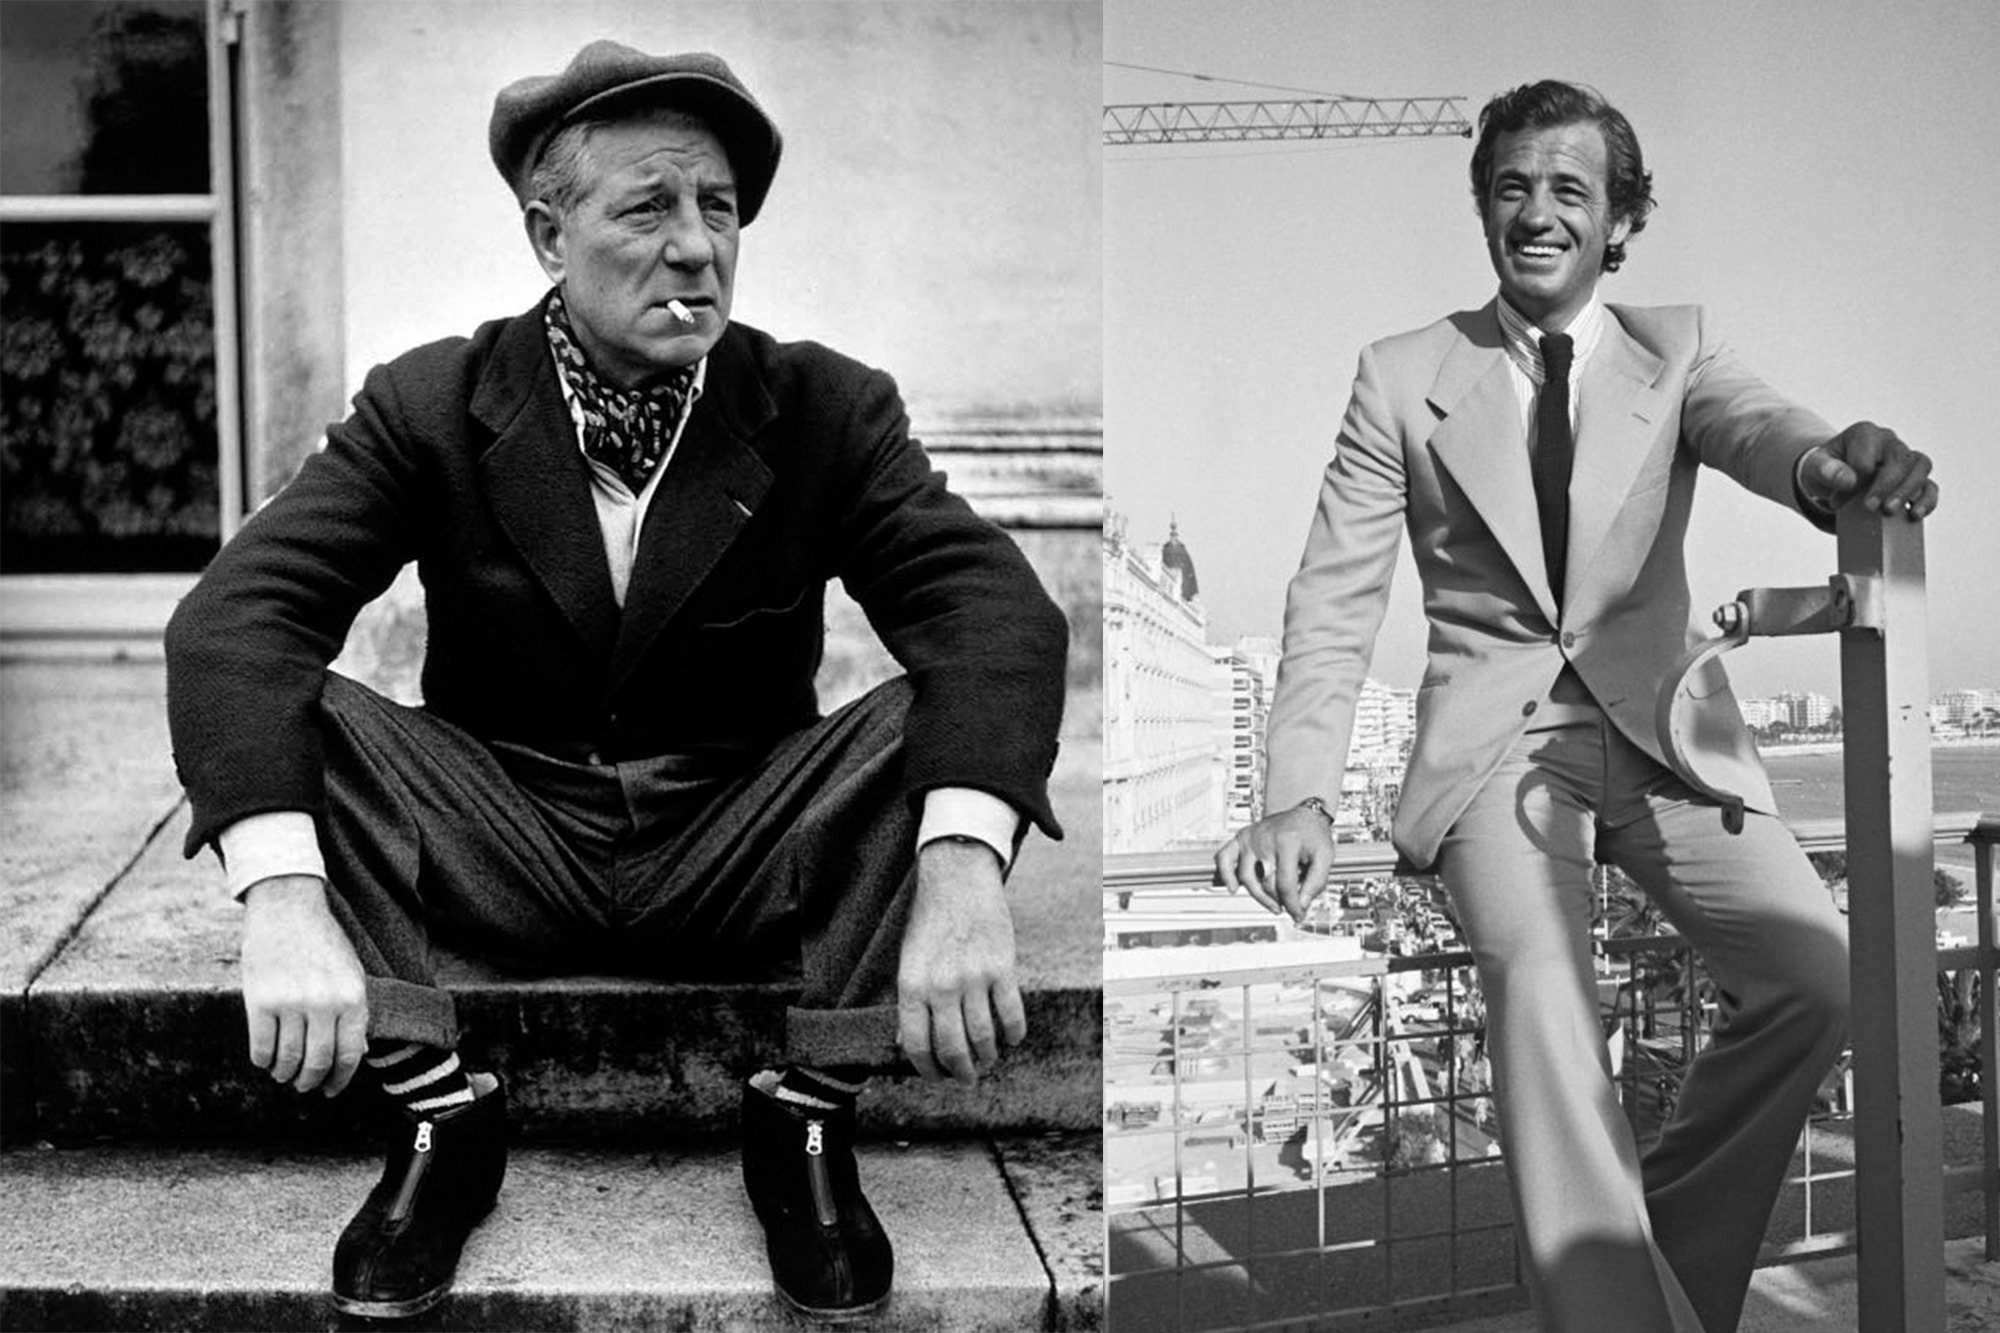 Icones de style Husbands - Jean Gabin et Jean-Paul Belmondo